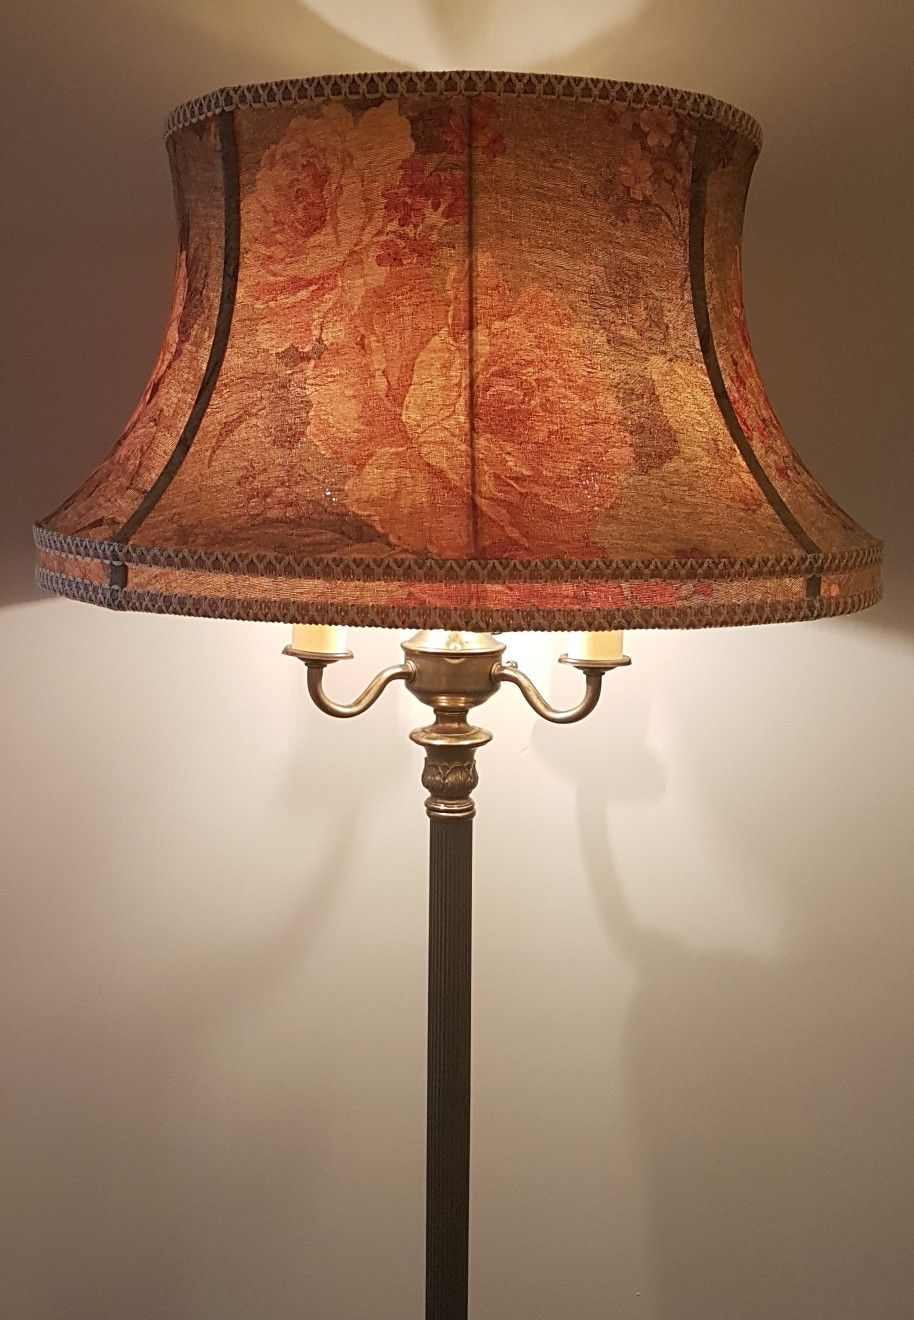 1940 S Tri Ligh Floor Lamp I Recovered The Original Shade With A Floral Fabric The Shade Has A White Silk Lining Floral Lampshade Victorian Lampshades Lamp